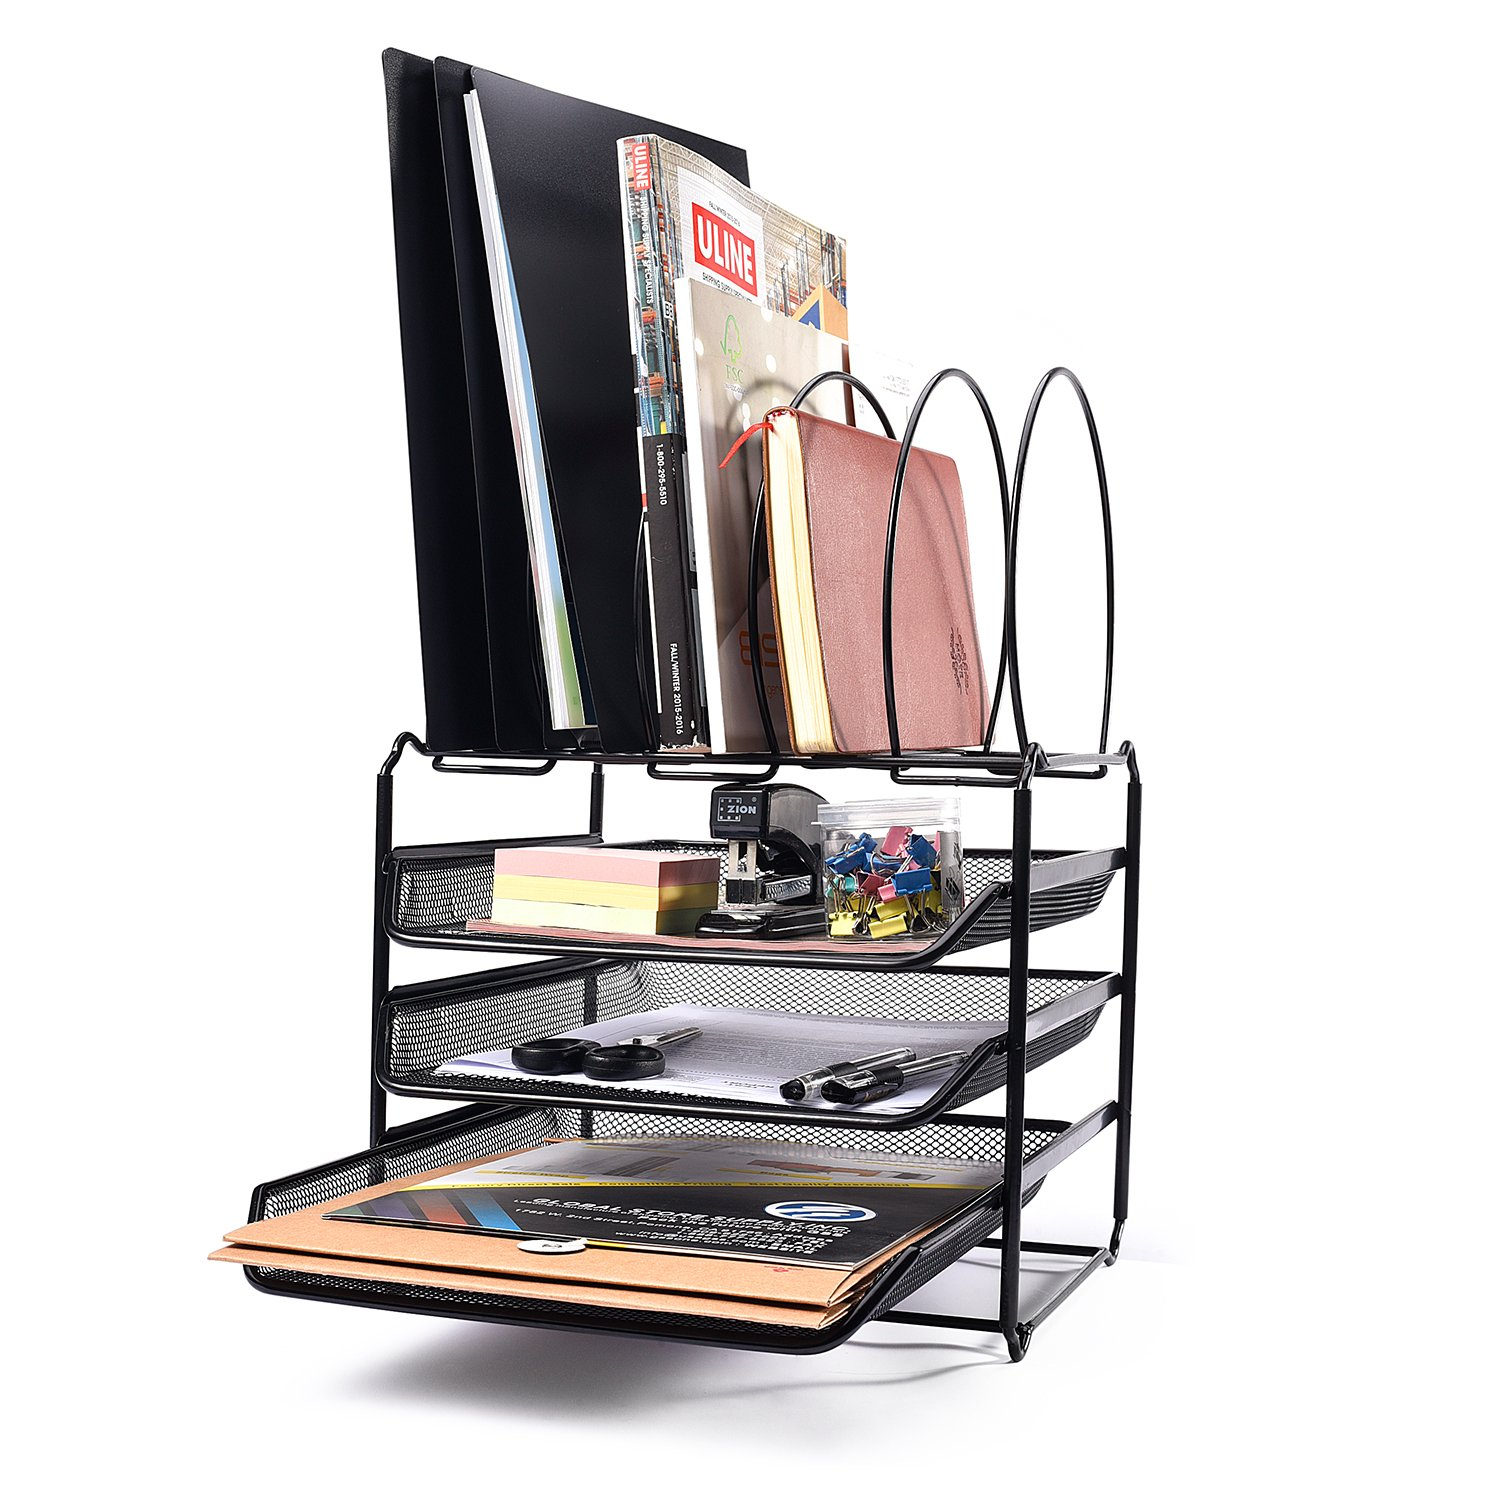 Acko 3 Tier Mesh File Organizer Office Desk Organizer Document Letter Tray Organizer with 5 Tiered Sections ,Black